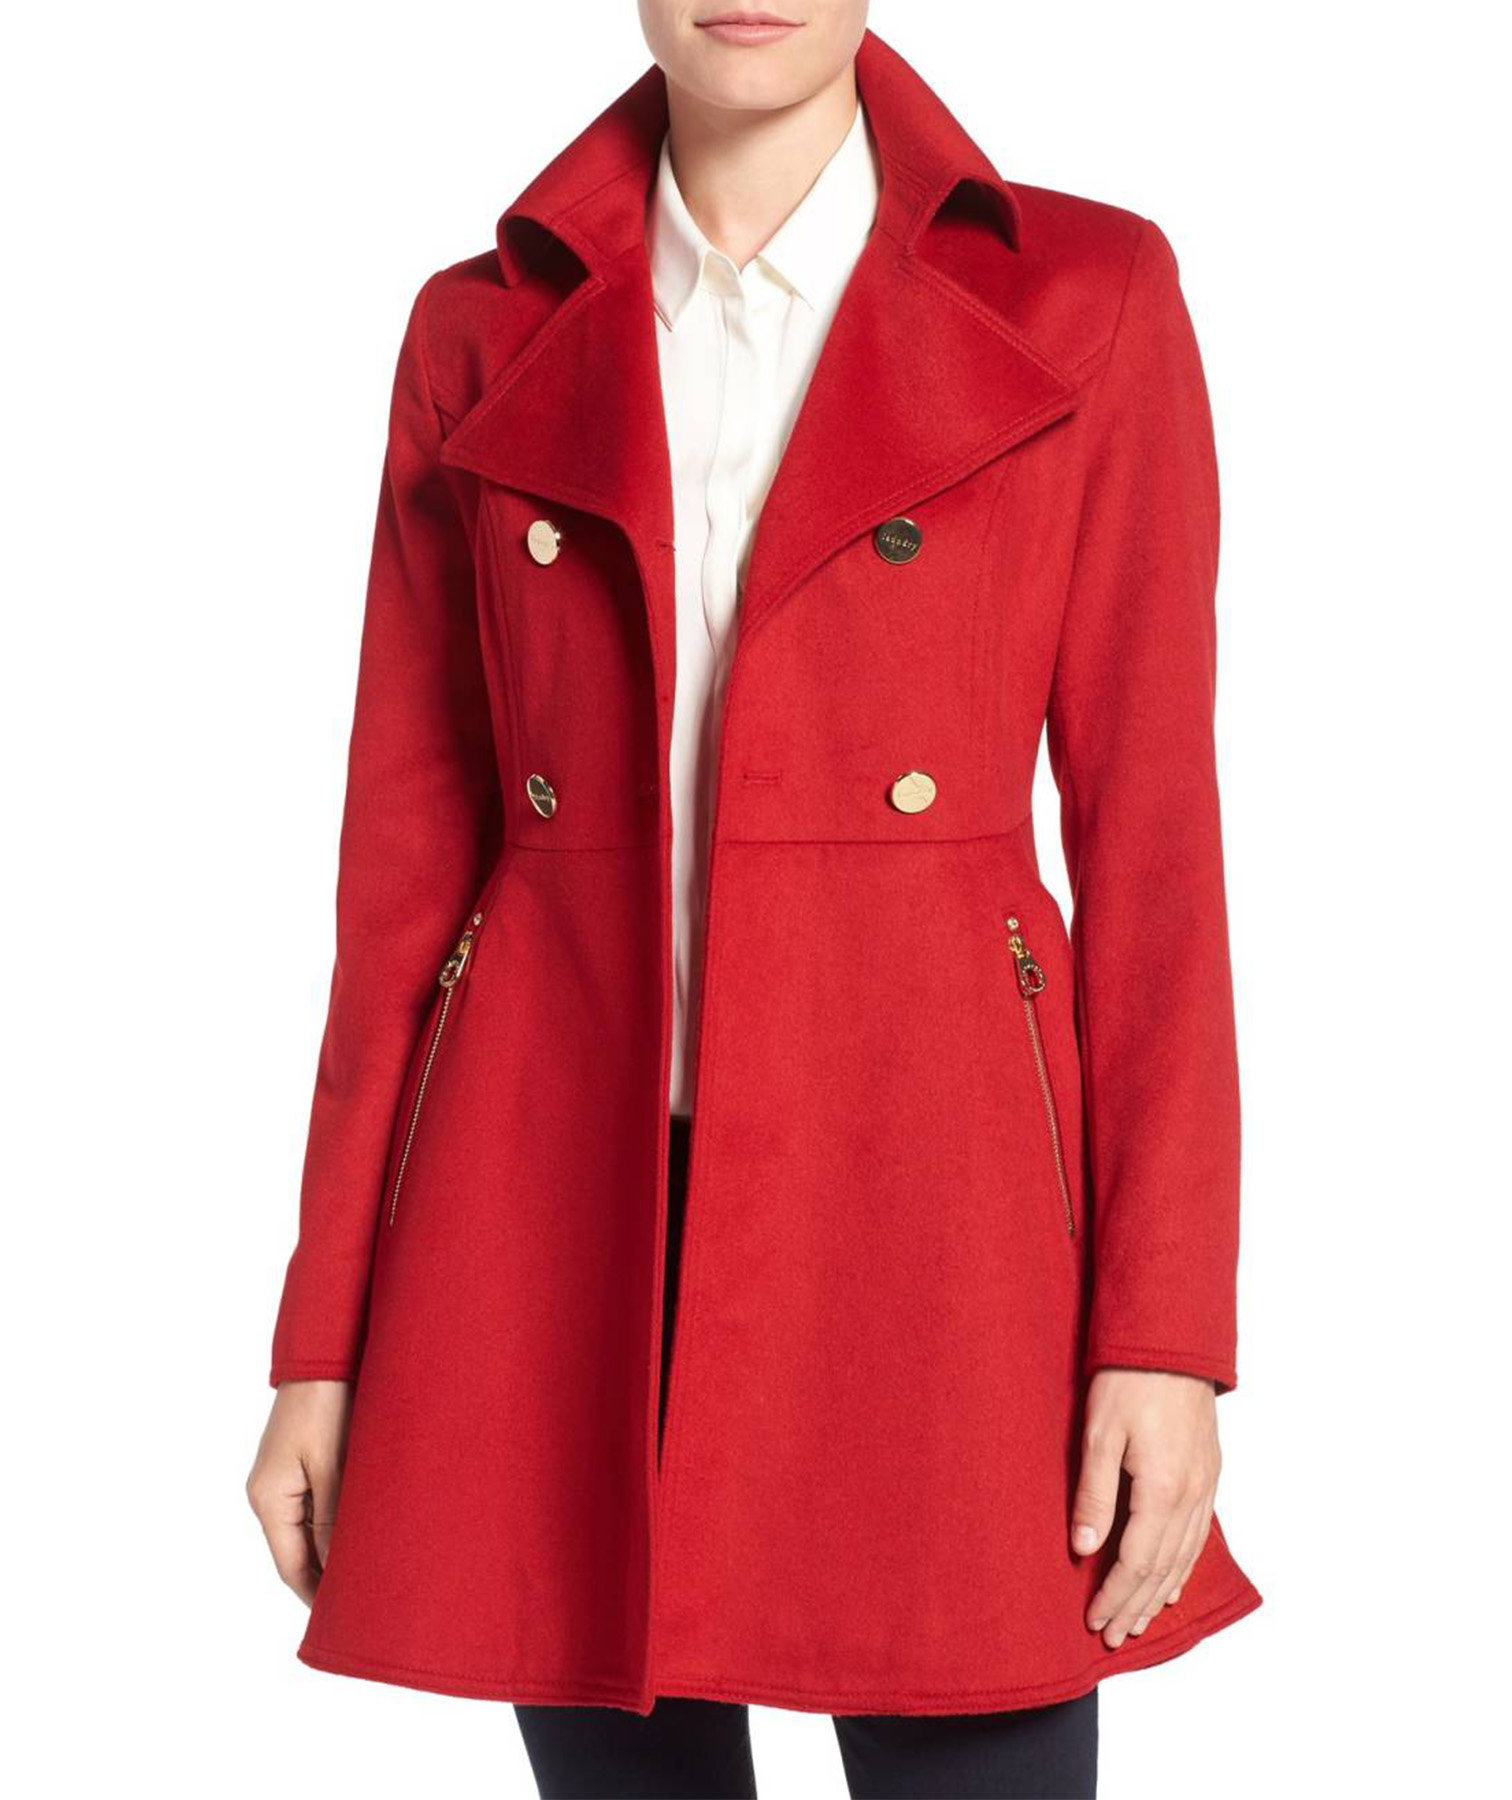 Laundry by Shelli Segal Fit and Flare Coat, in Red Dahlia